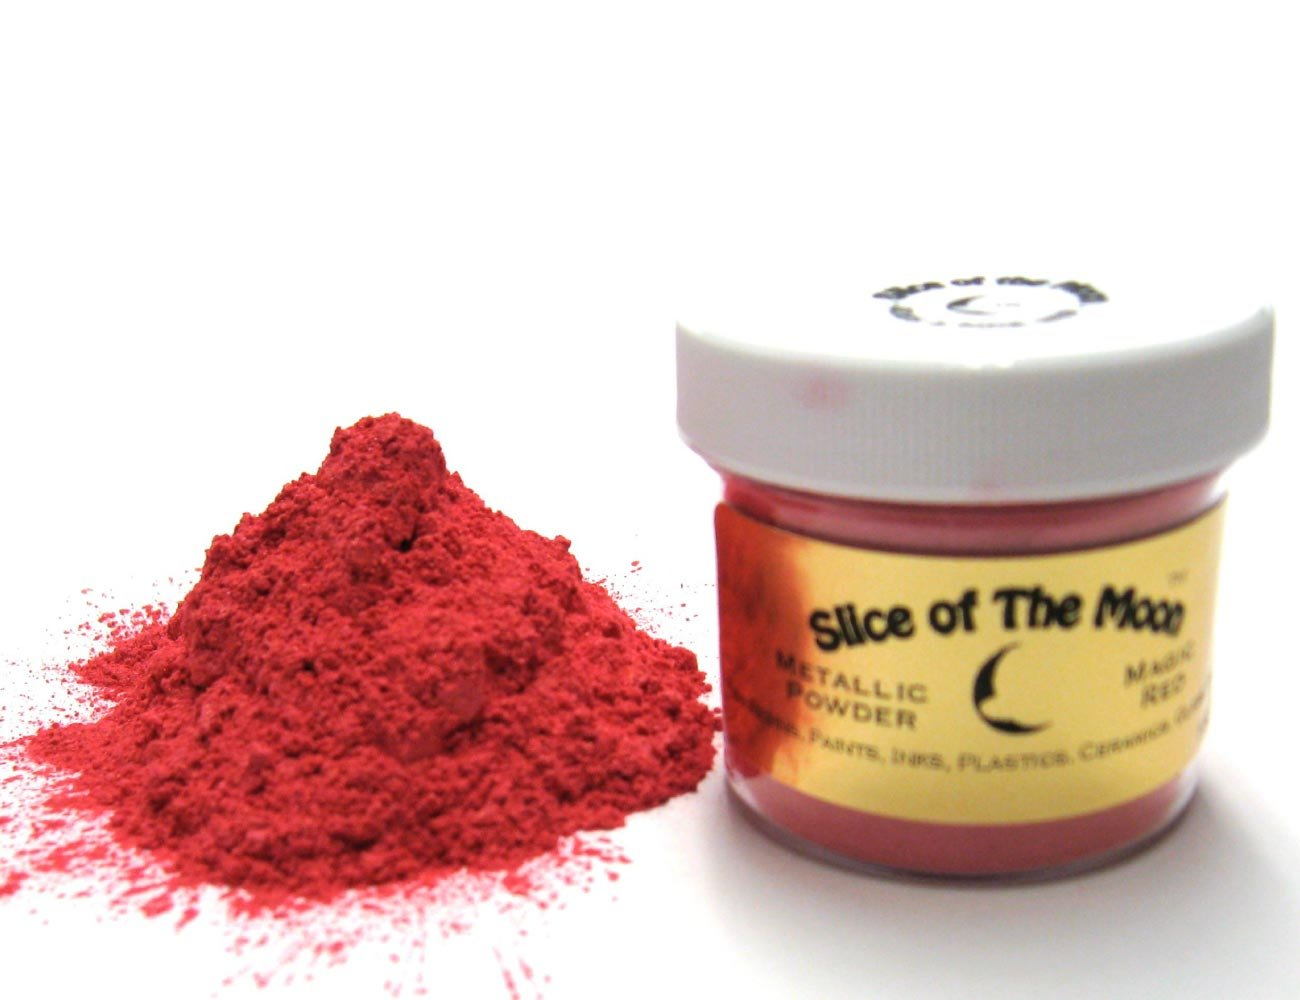 Magic Red Mica Powder 1oz, Metallic Pink Powder, Cosmetic Mica, Slice of the Moon